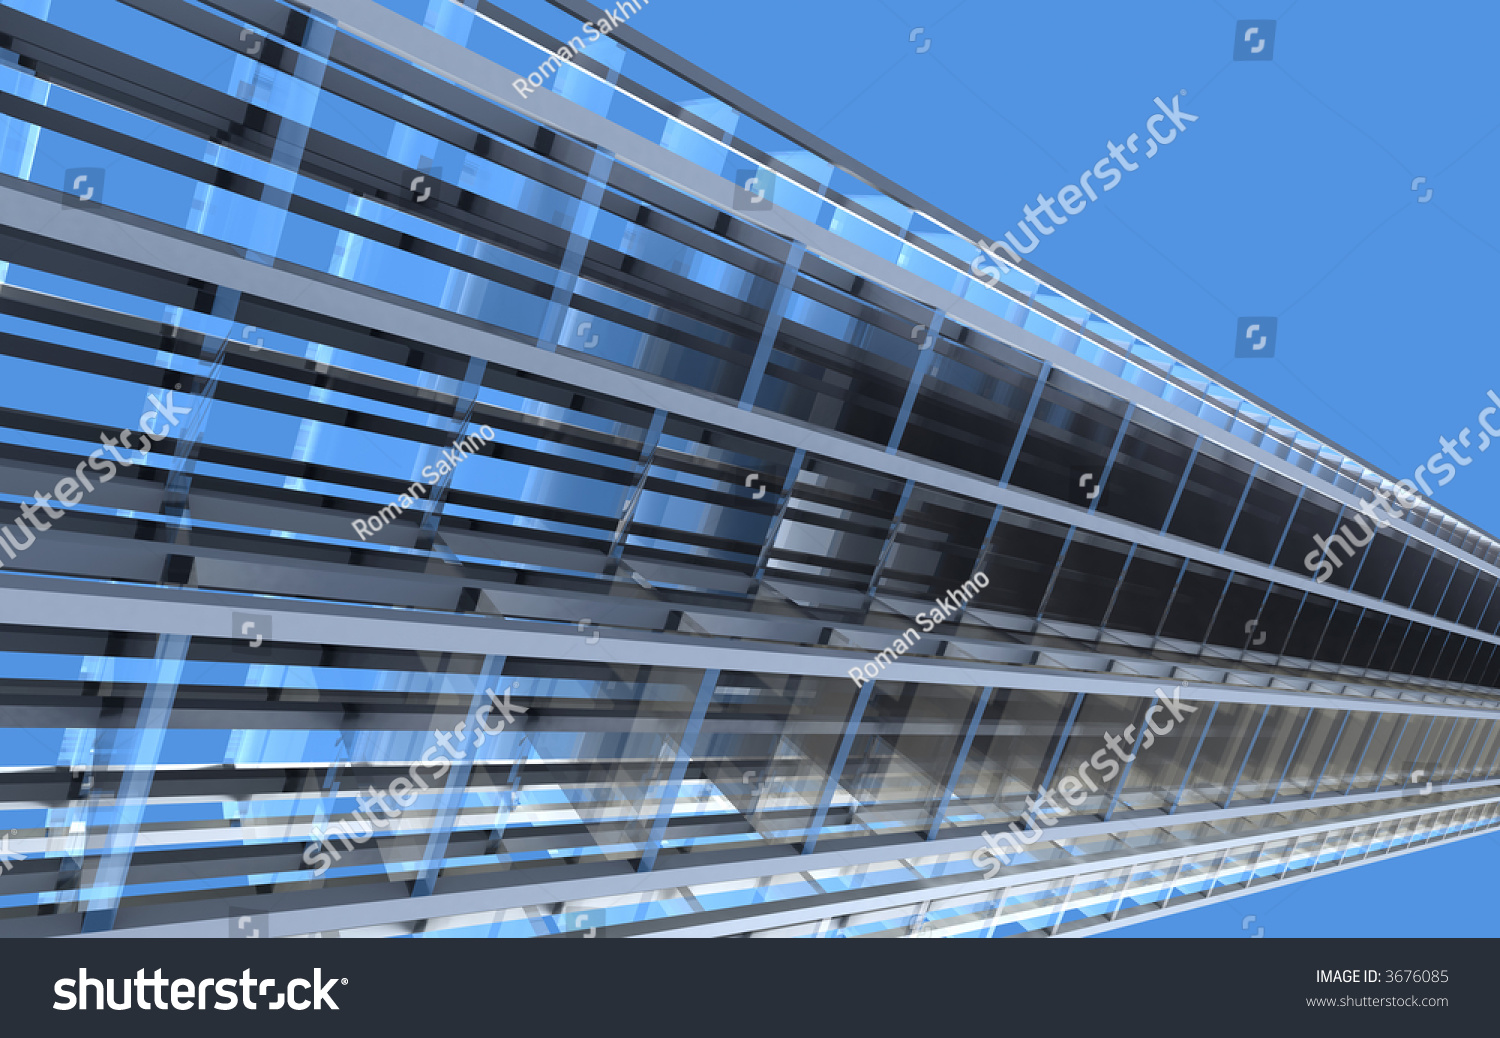 D architectural abstract concept building architecture stock